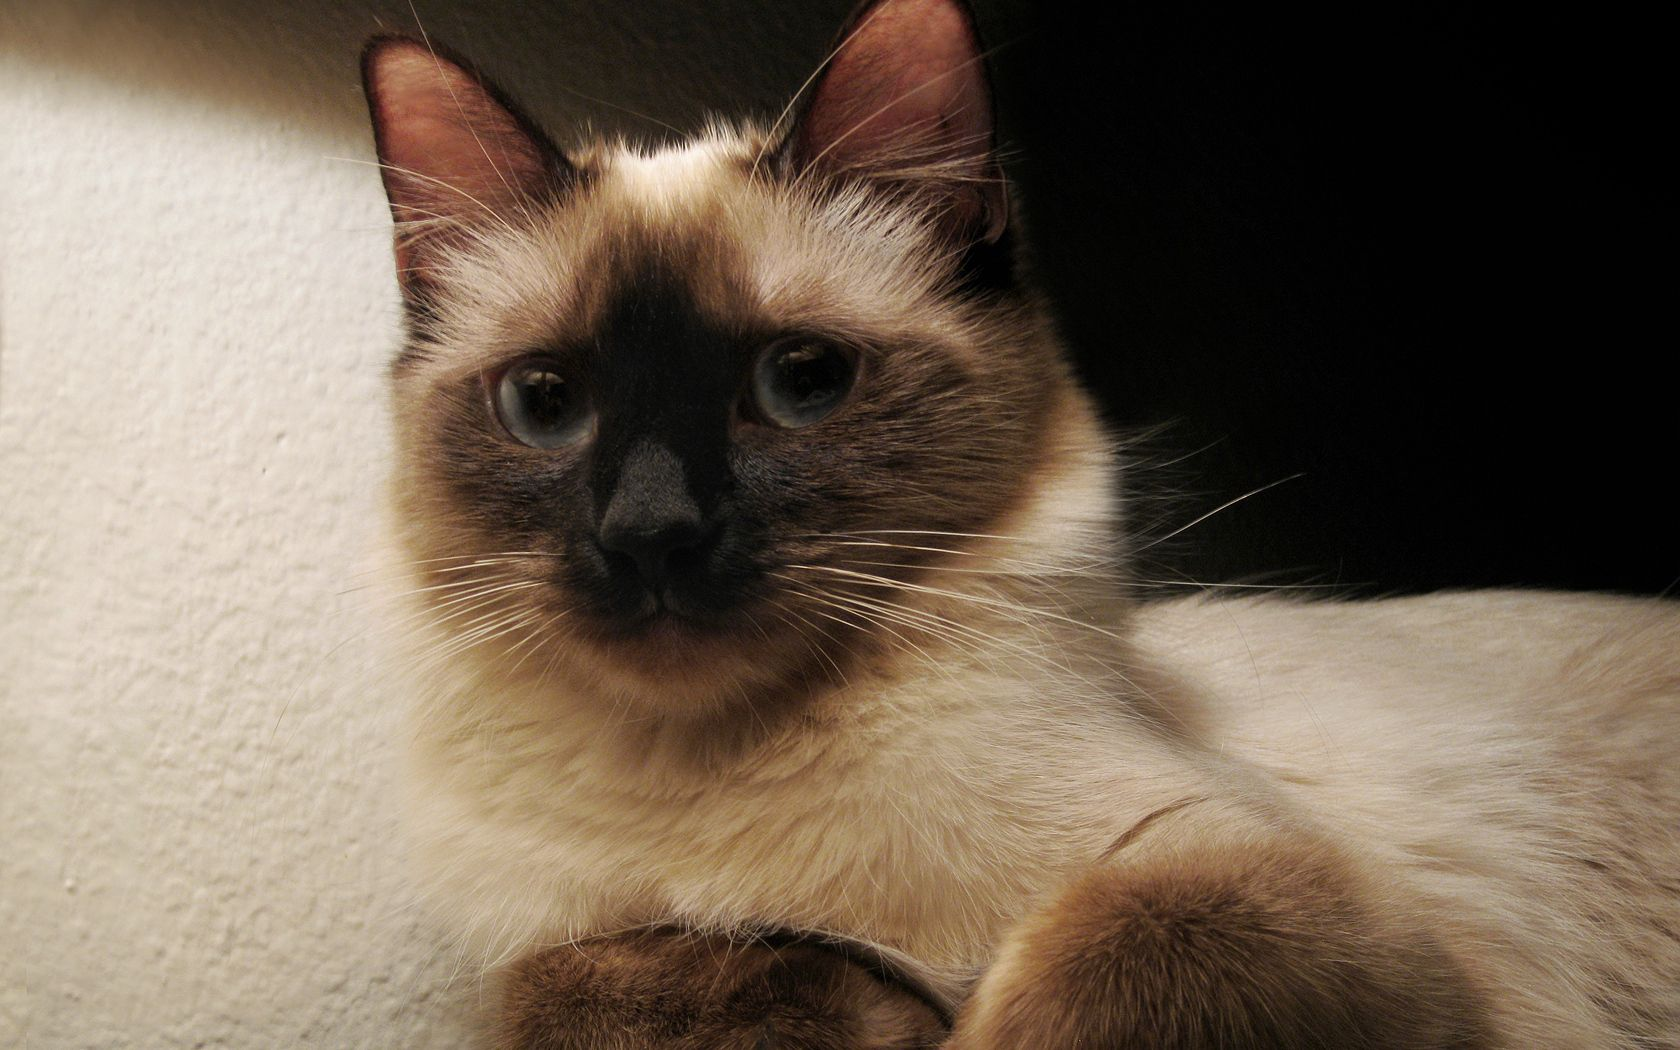 75599 download wallpaper Animals, Cat, Kitty, Kitten, Siamese, Spotted, Spotty, Grey screensavers and pictures for free